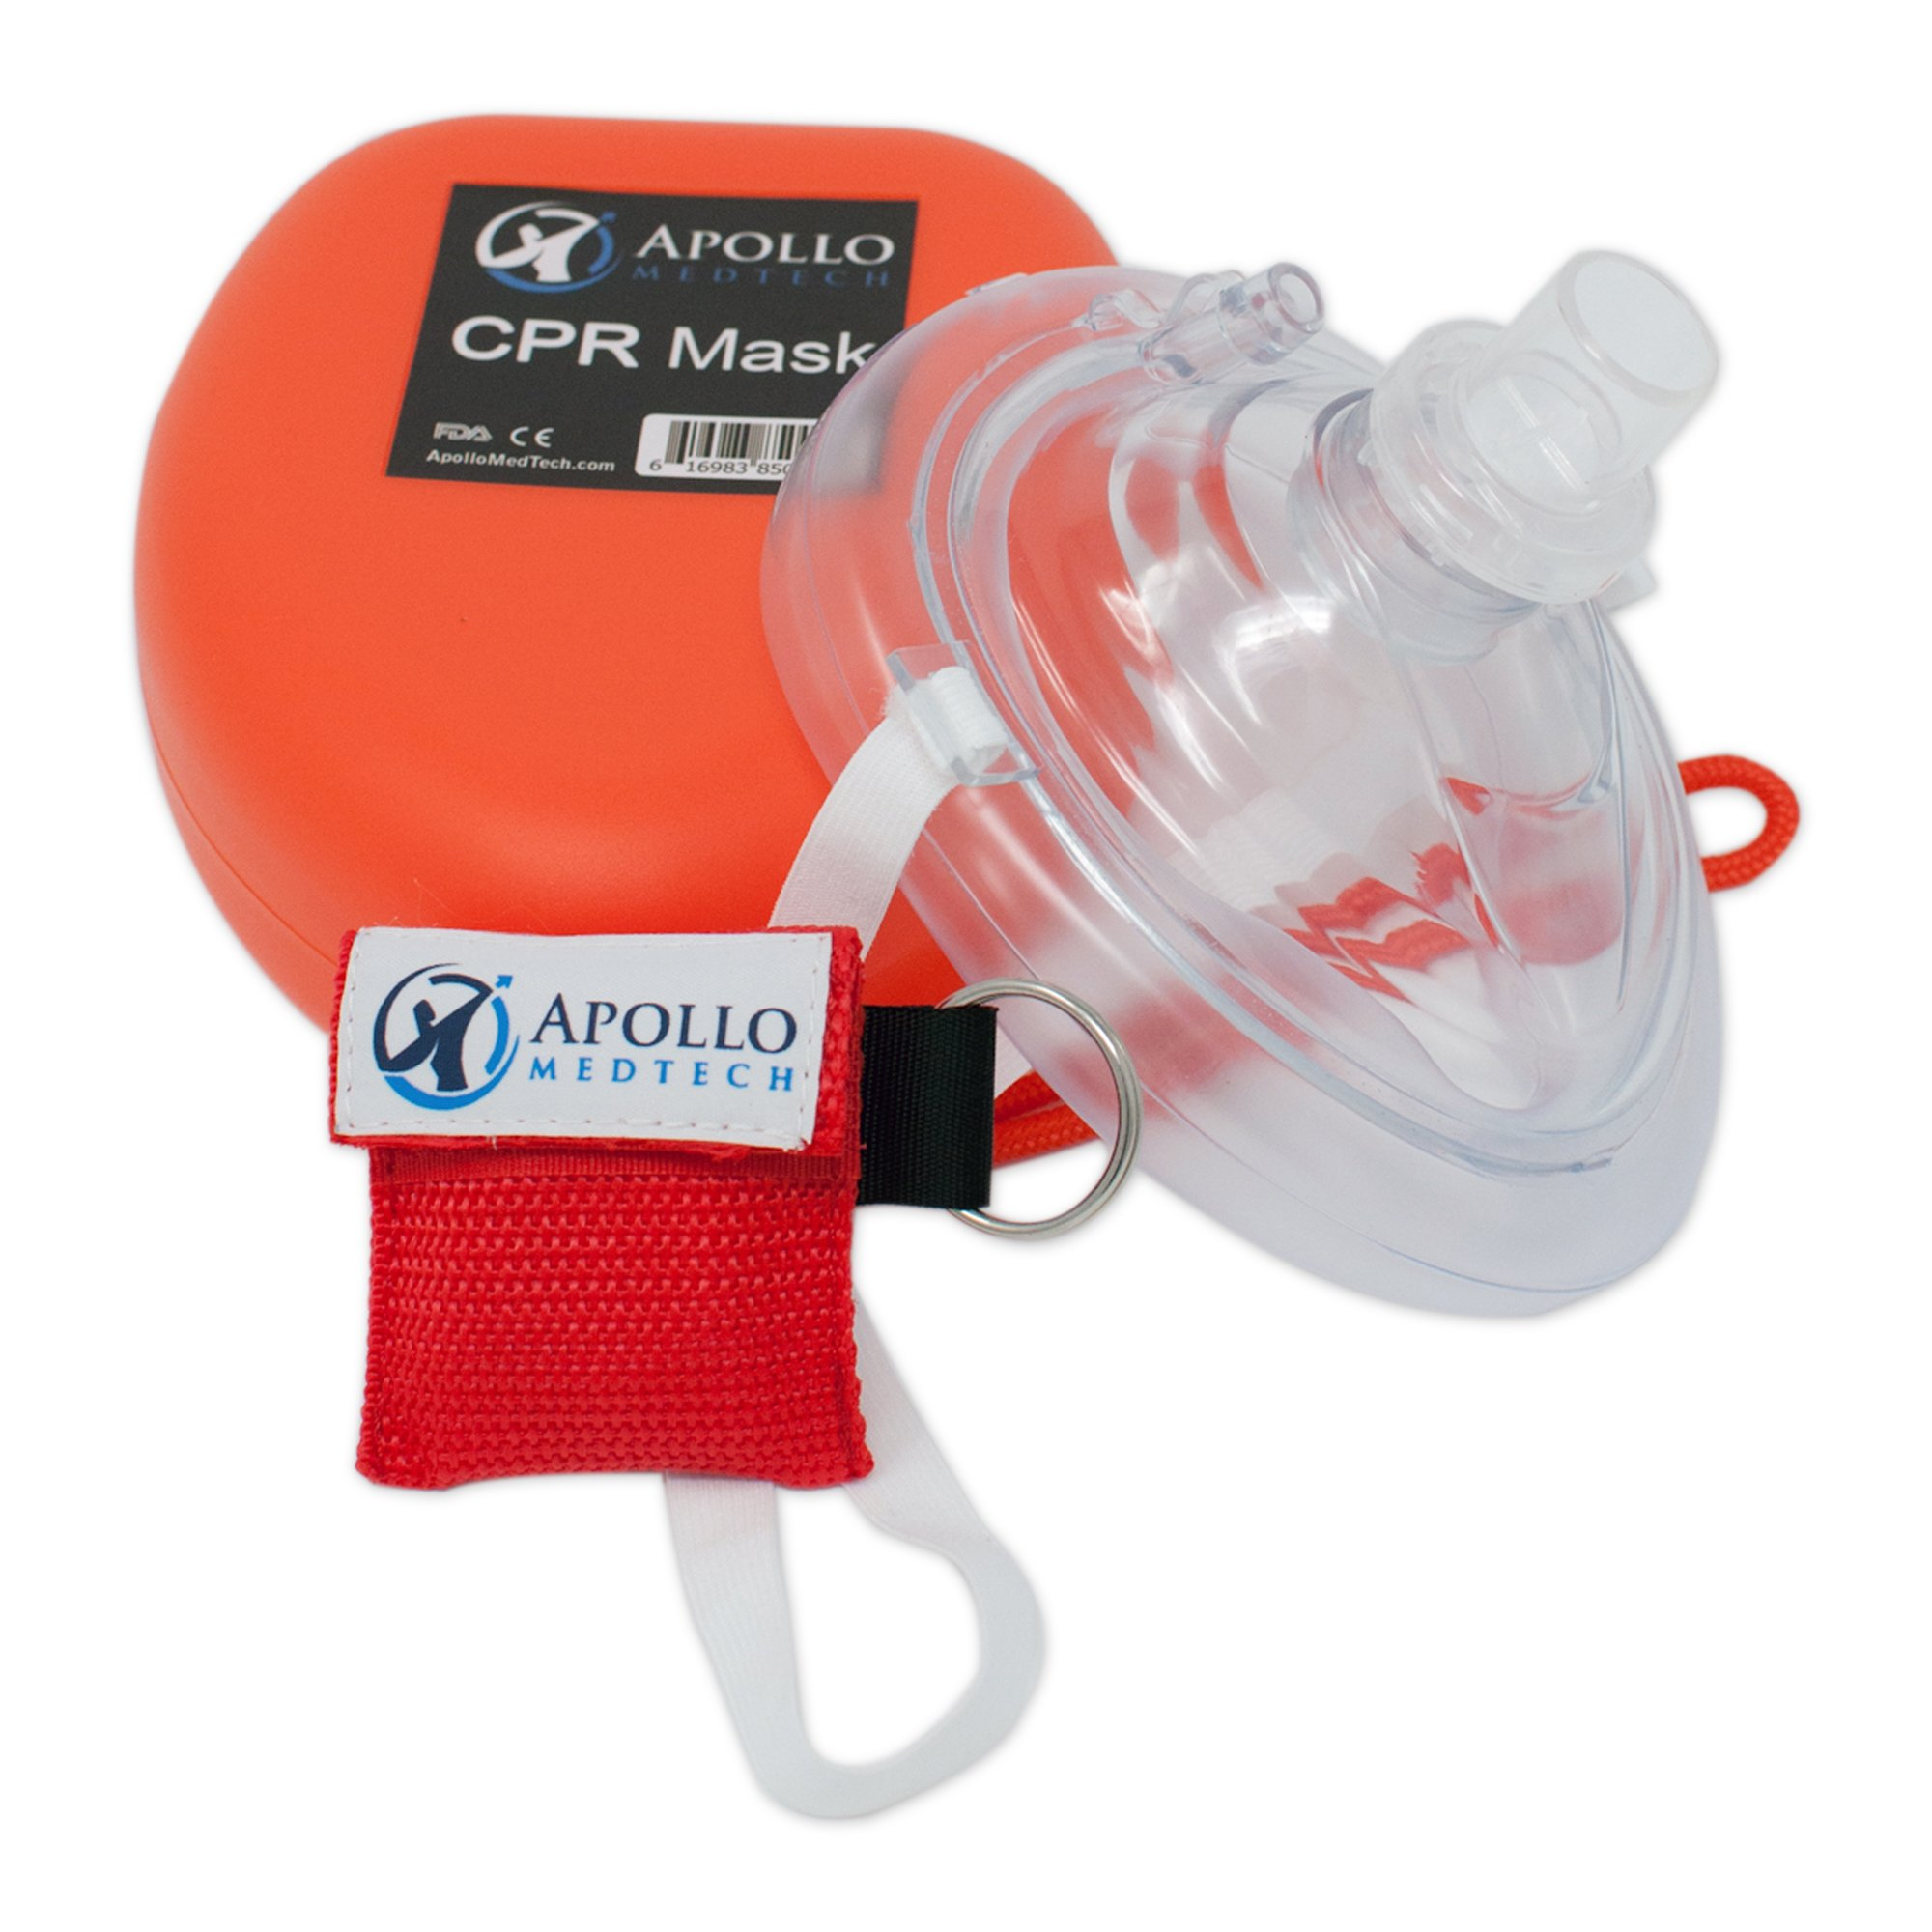 CPR Mask (with Bonus keychain CPR Mask) - First Aid Face Shield with One-Way Breath Valve - Apollo MedTech Brand